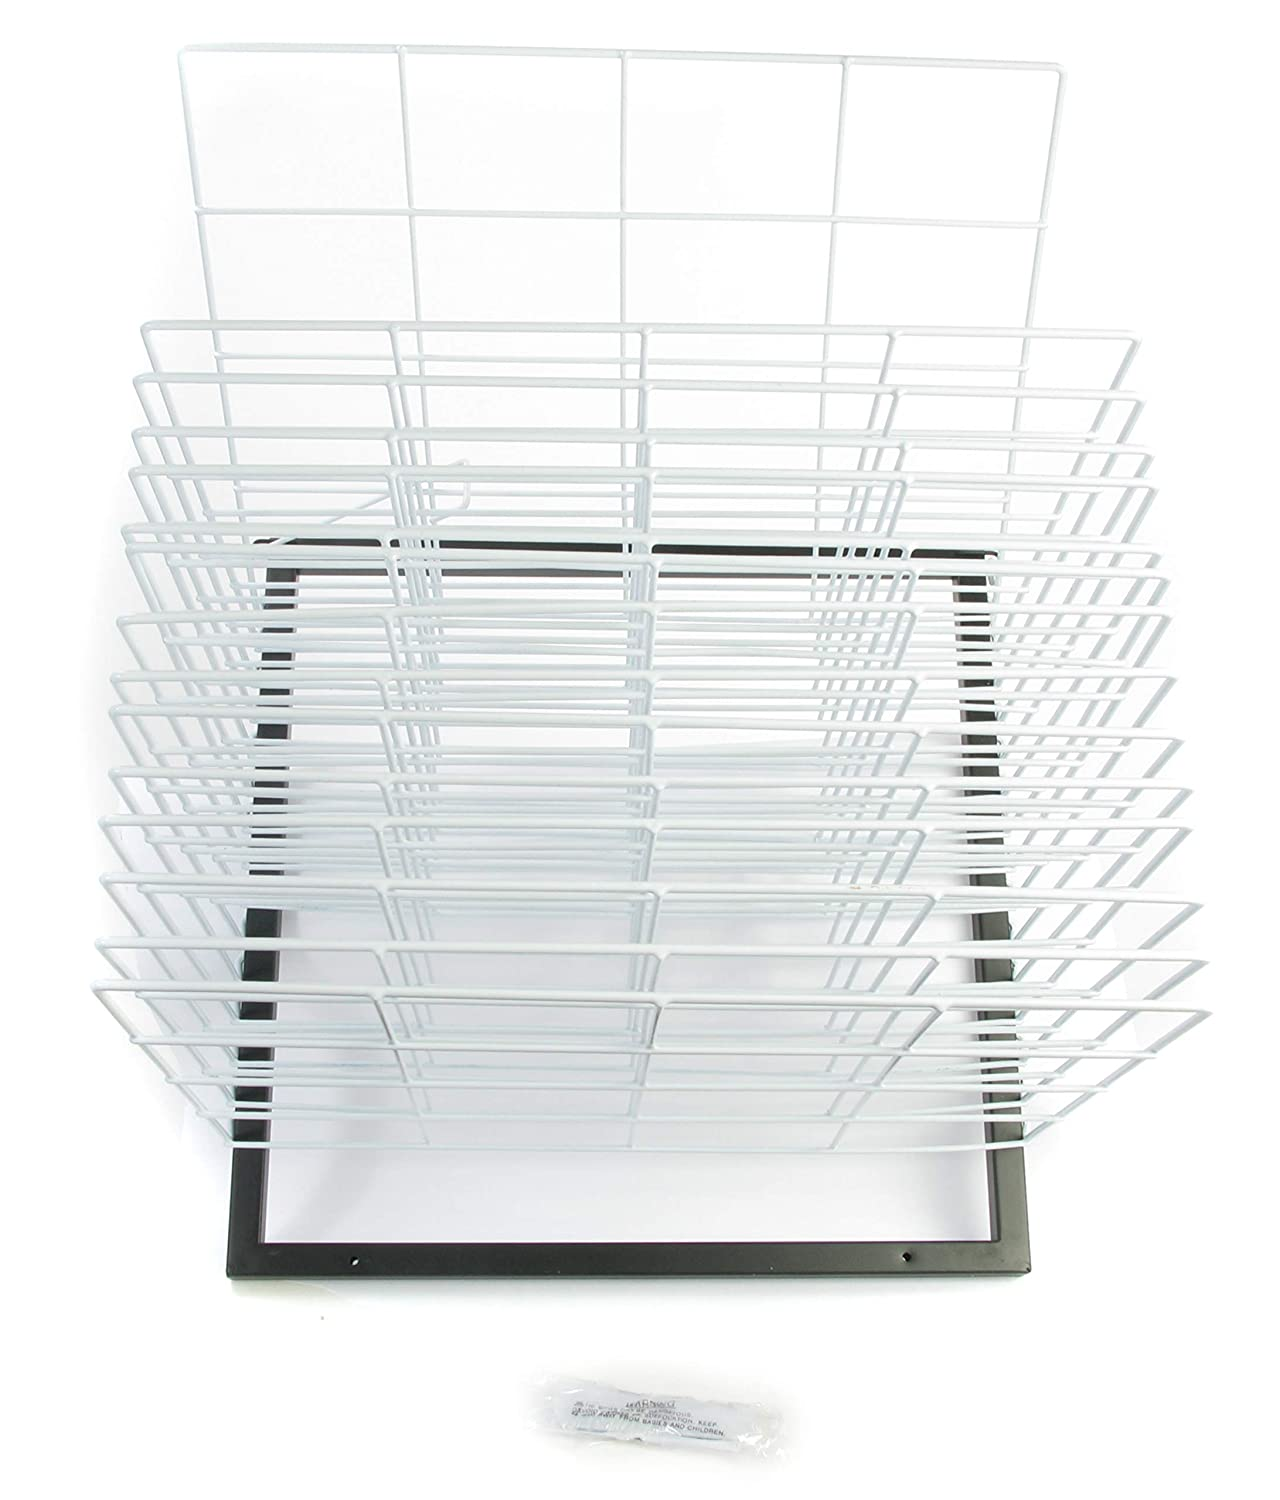 7 Height 33 Length American Educational Products A-C1160 Robo Wall Mounted Drying Rack 15 Shelf 21 Wide